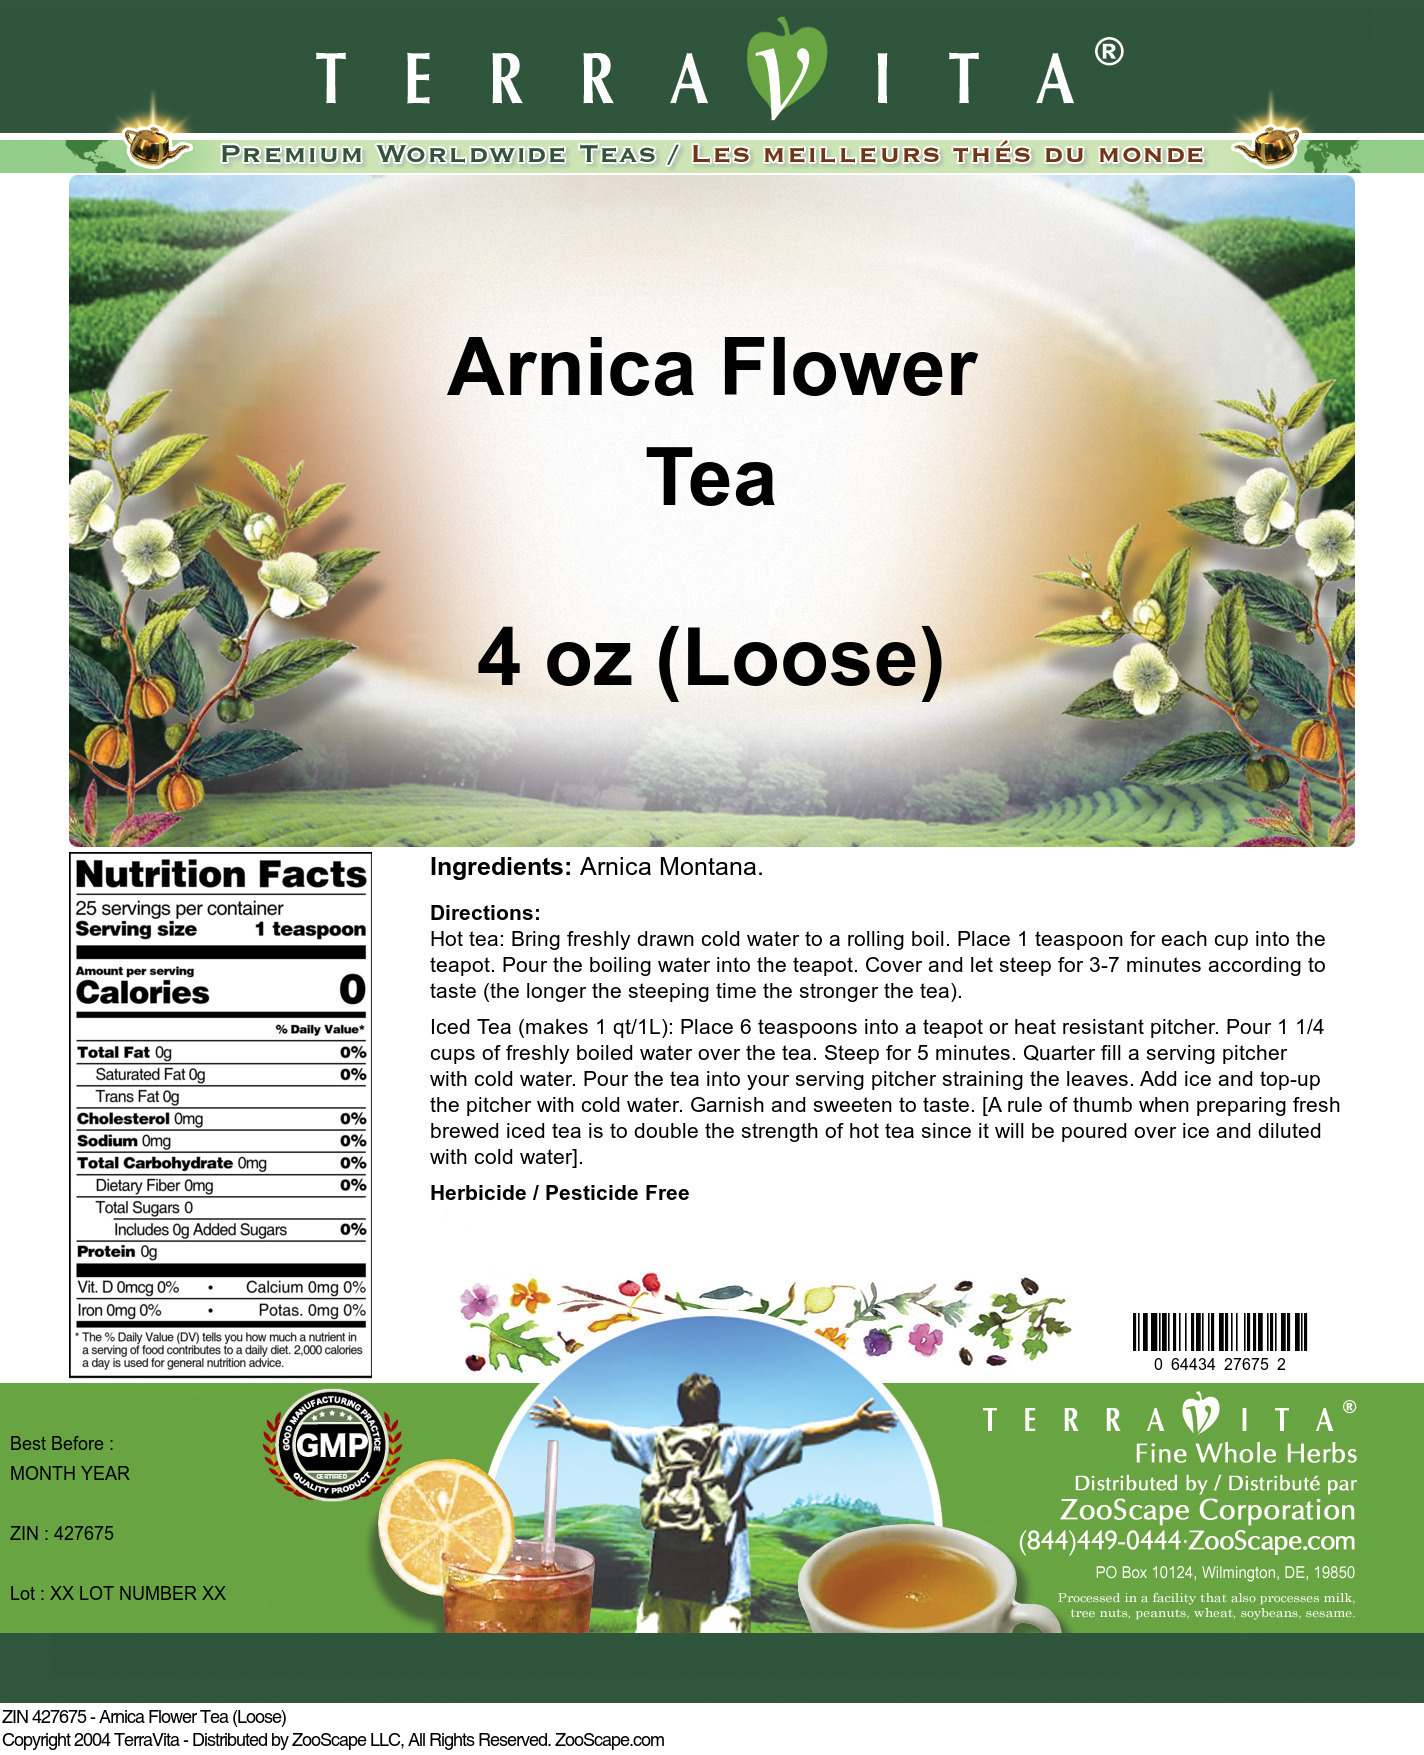 Arnica Flower Tea (Loose) - Label